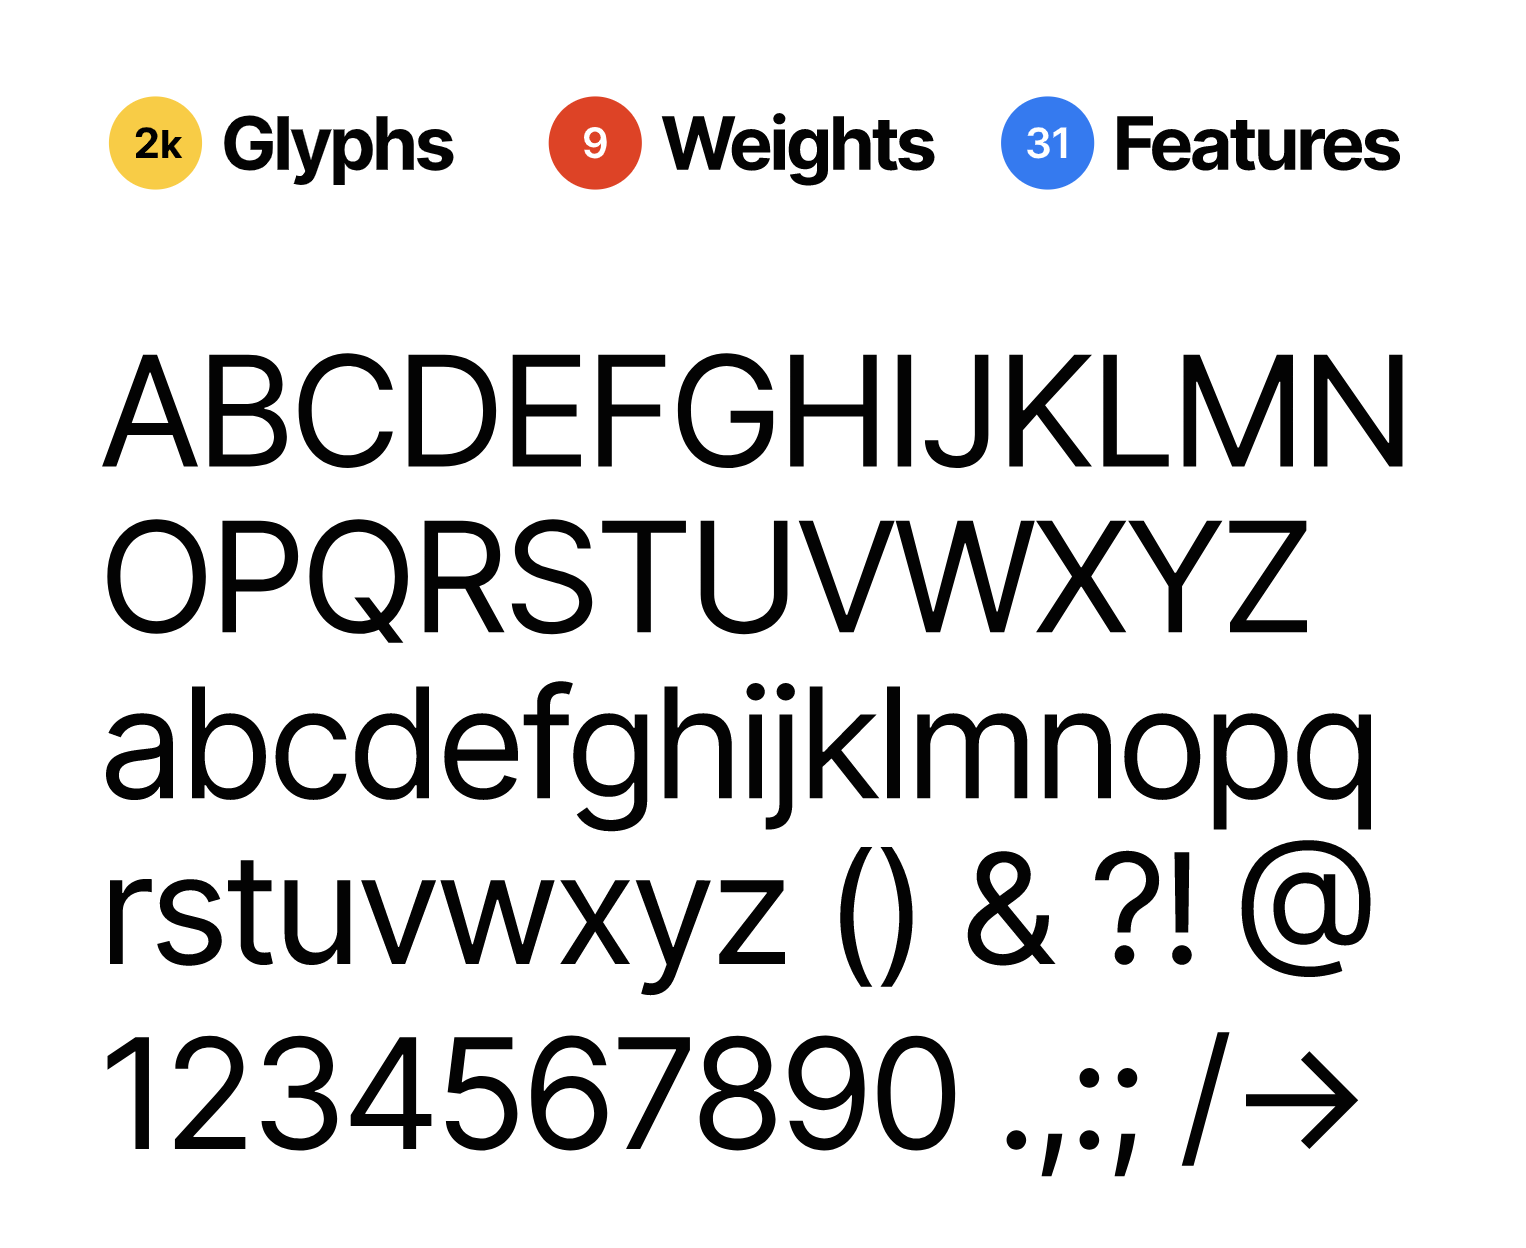 6 free Gothic and Grotesque Fonts to use in your next project